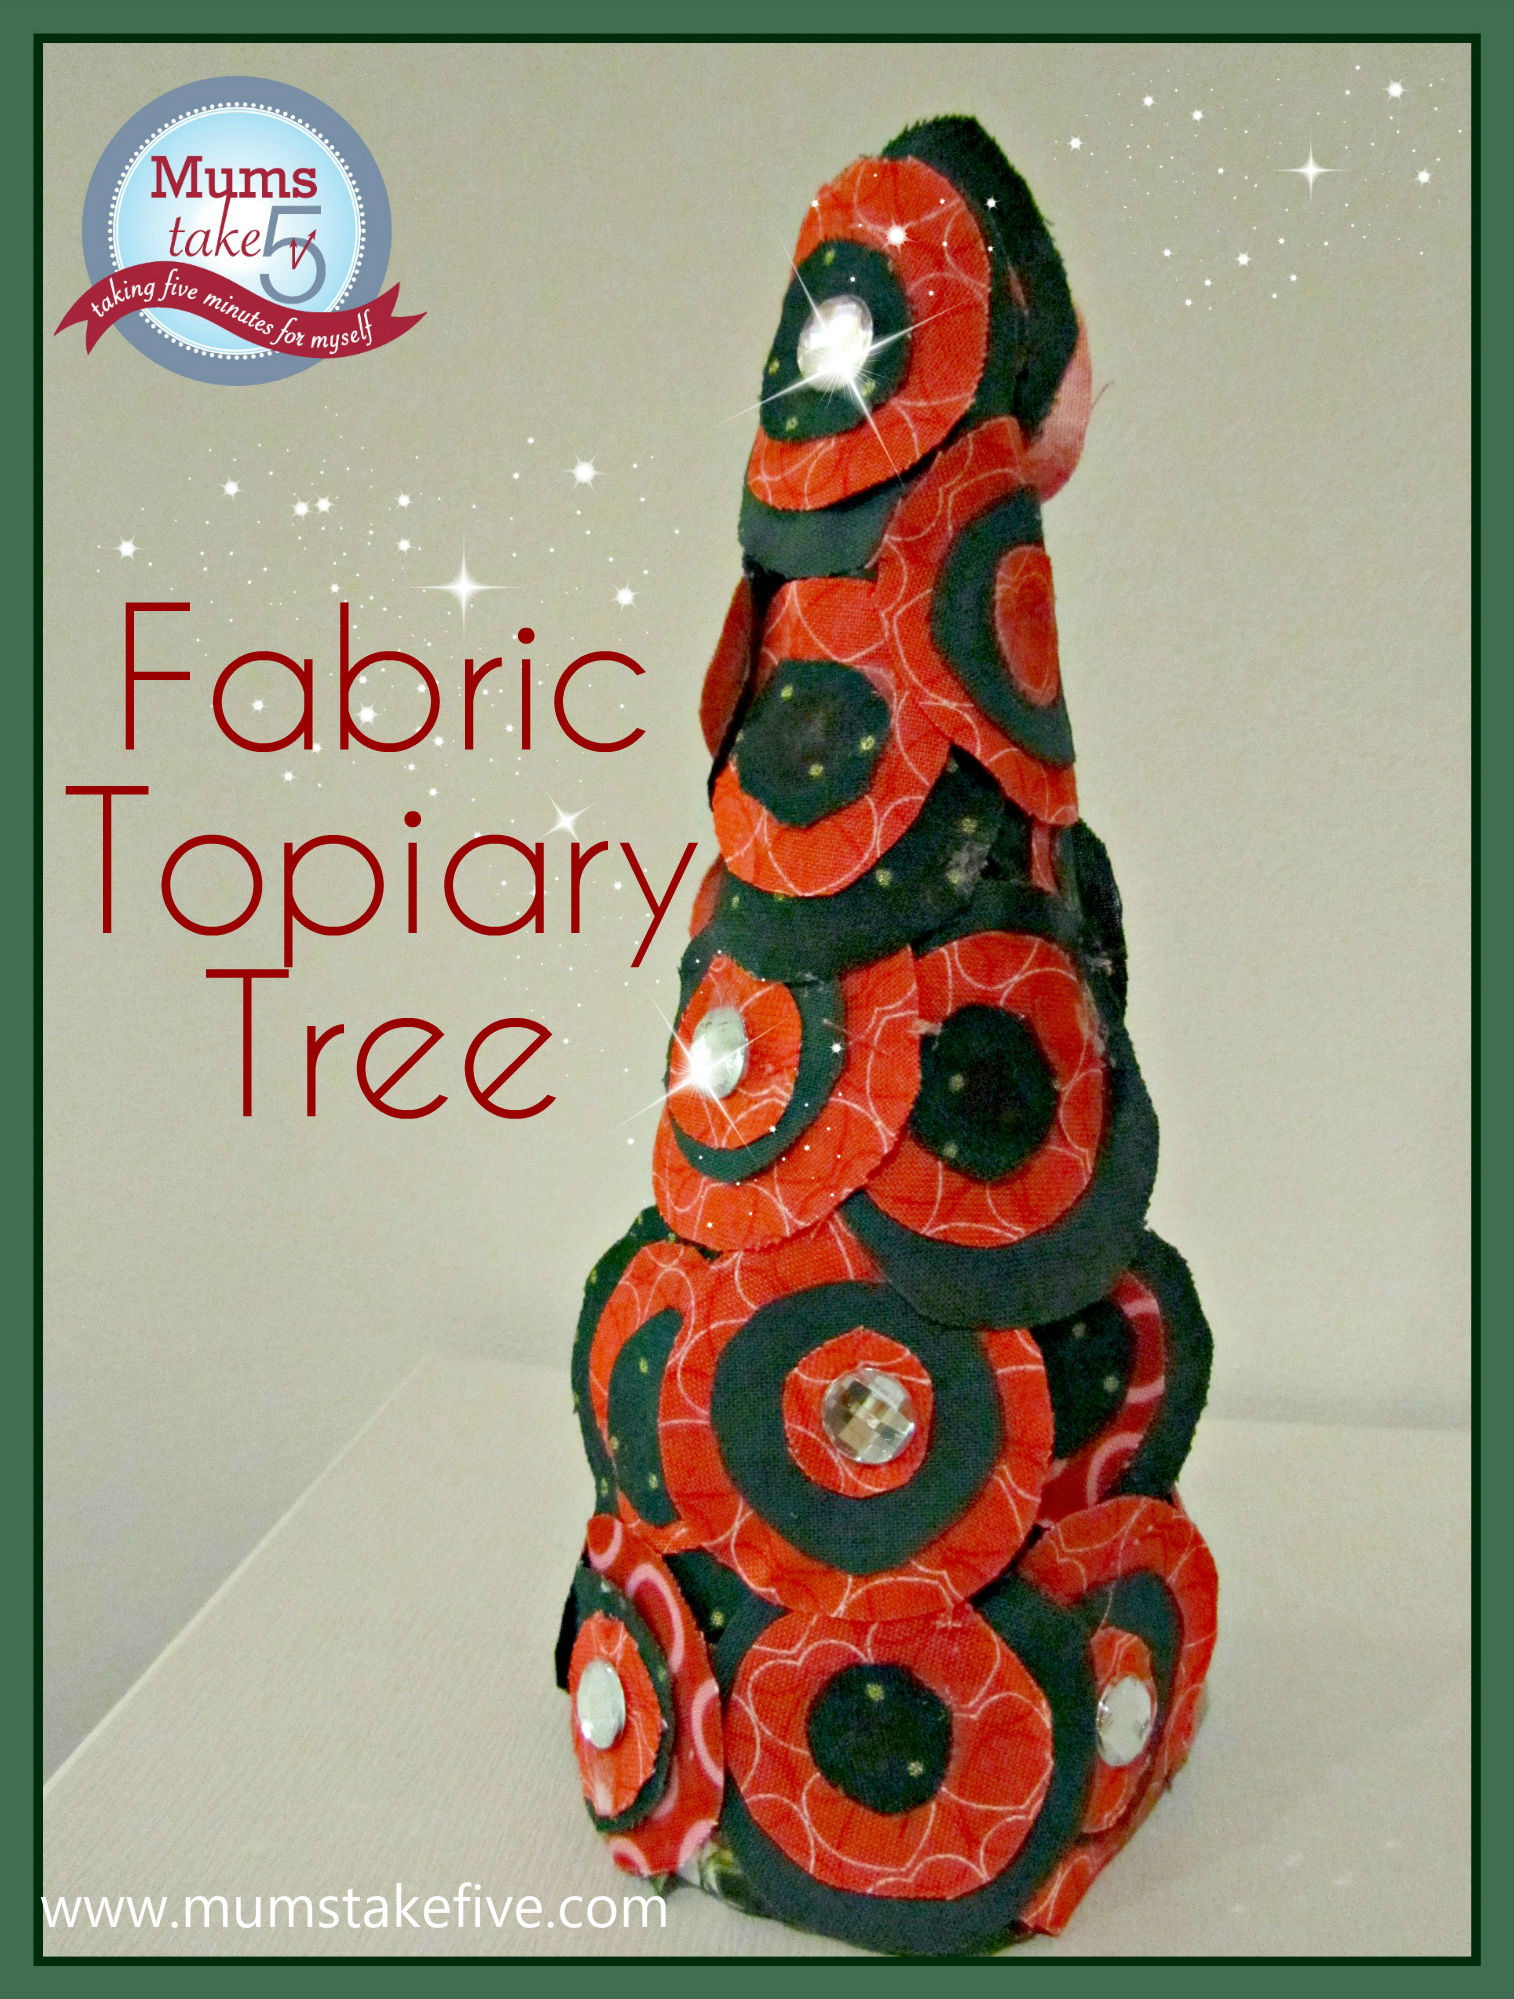 Fabric Topiary tree Christmas craft